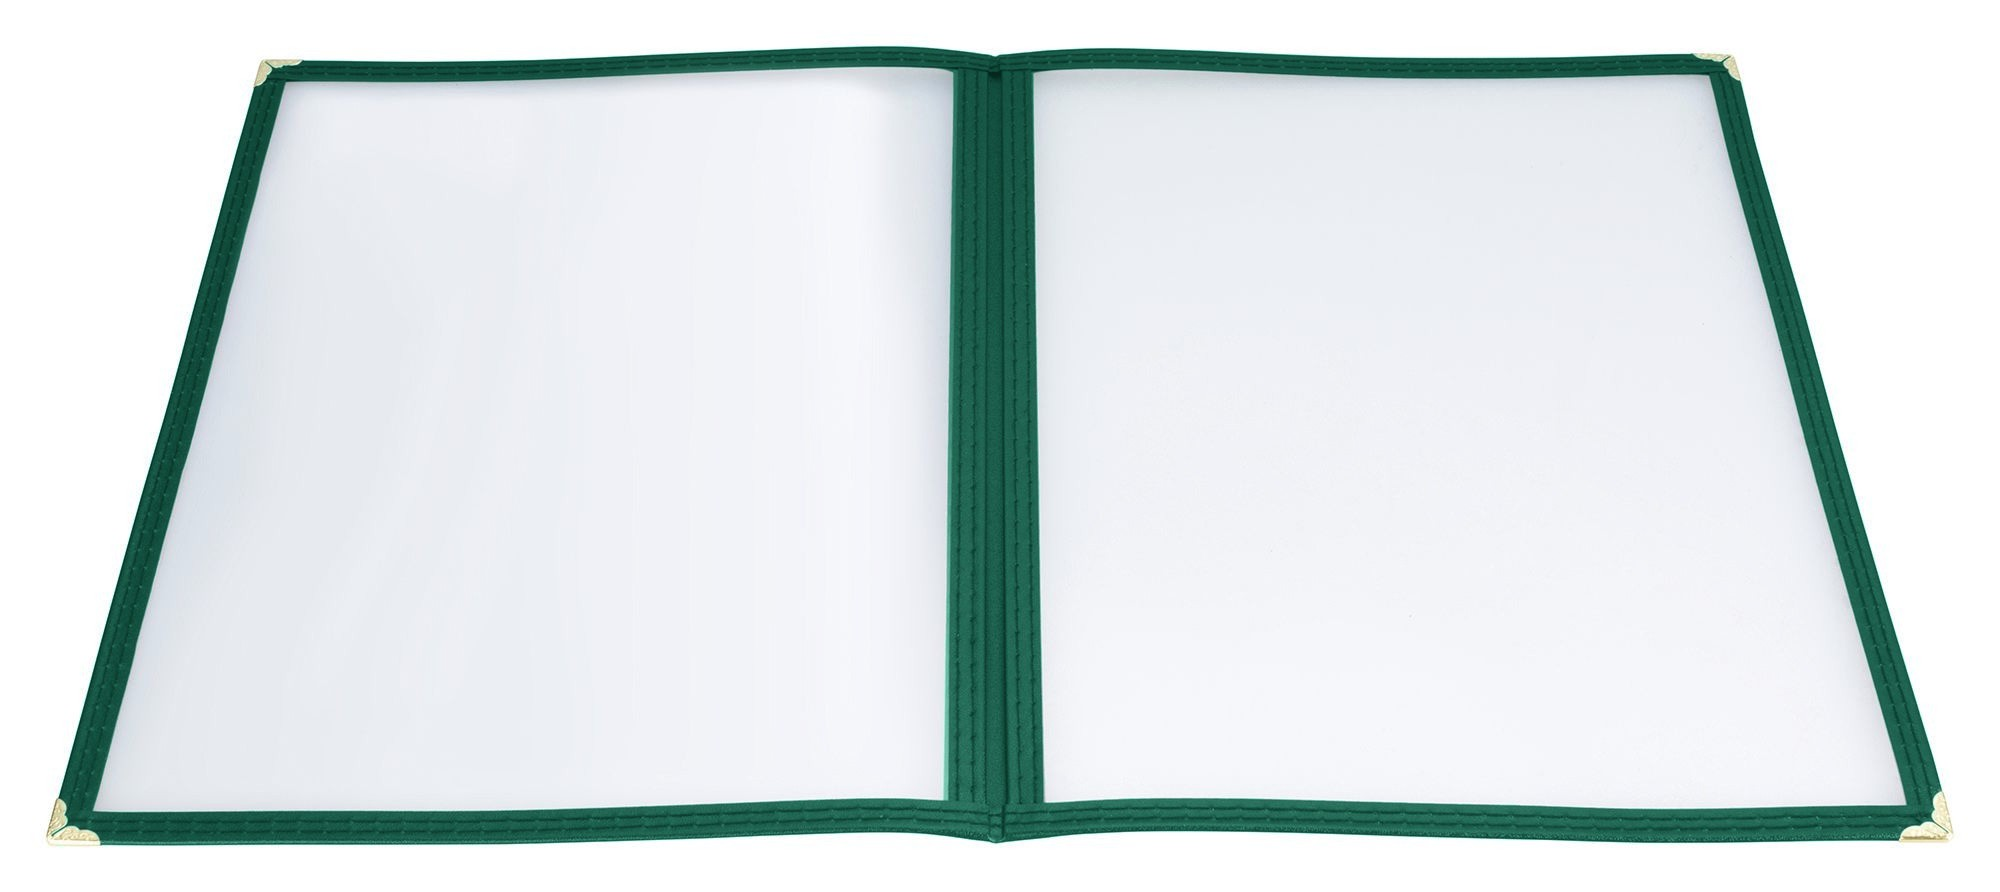 "Winco PMCD-9G Green Double Fold Menu Cover 9-1/2"" x 12"""